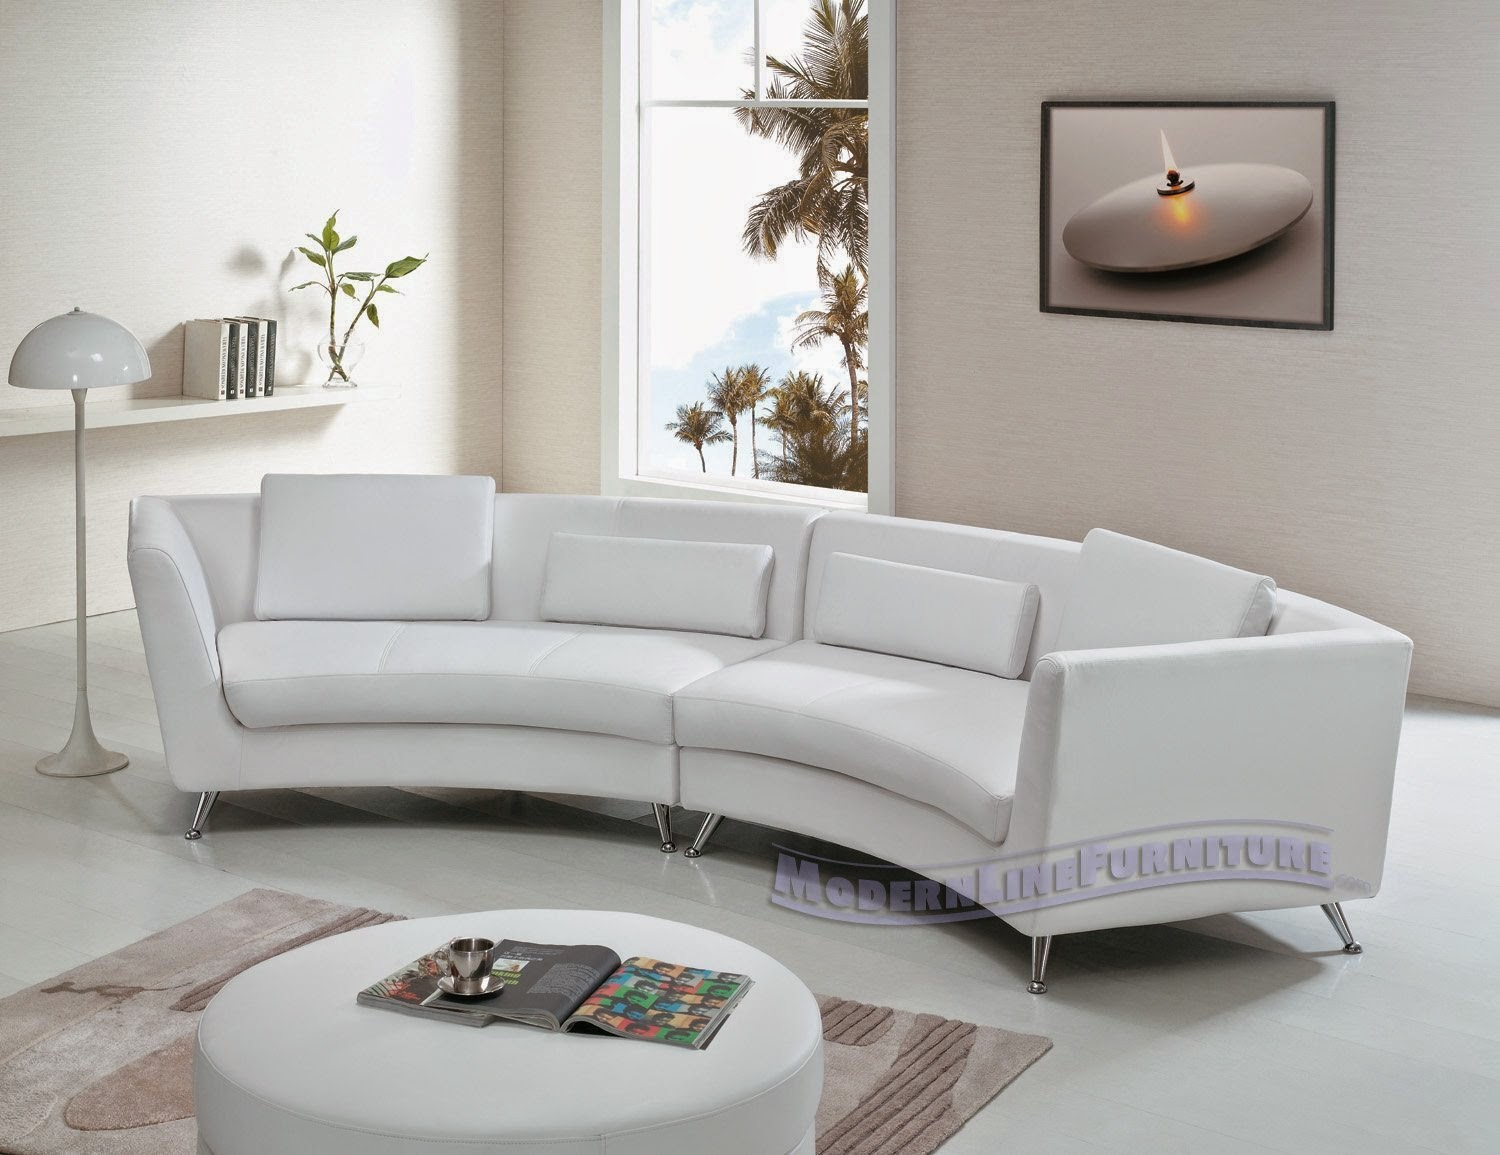 Contemporary Furniture White Leather Long Curved Sofa